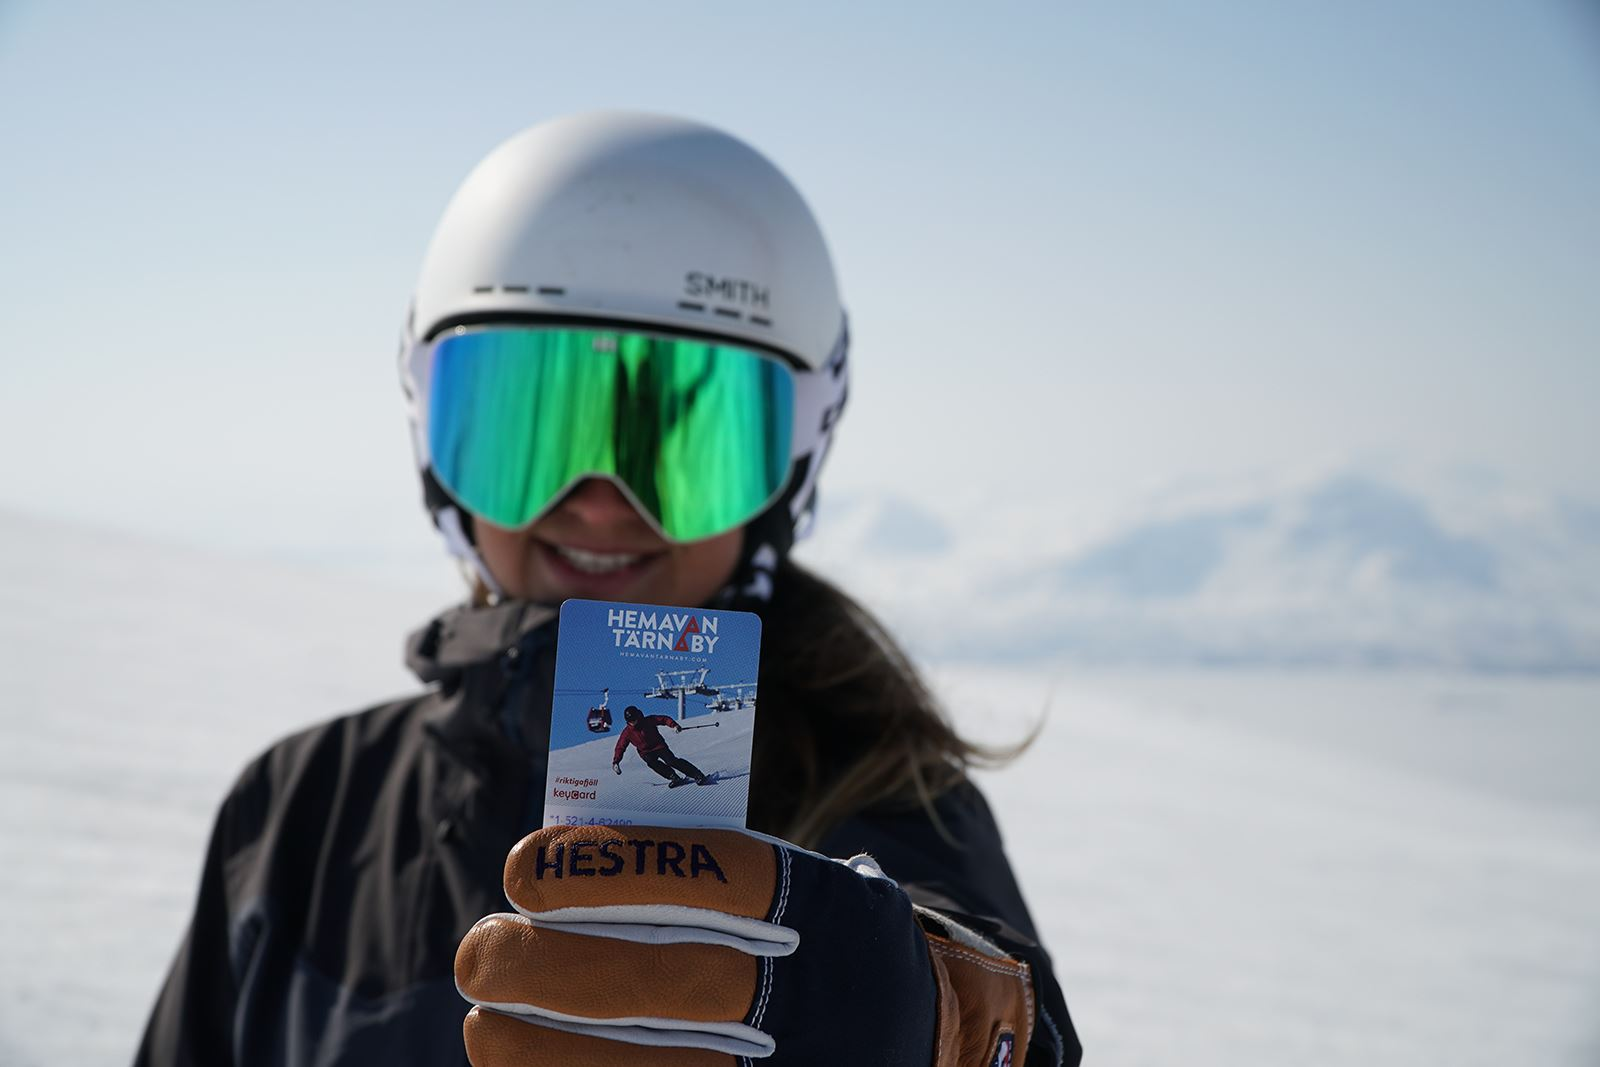 Skipass incl Key card (cabin owners)